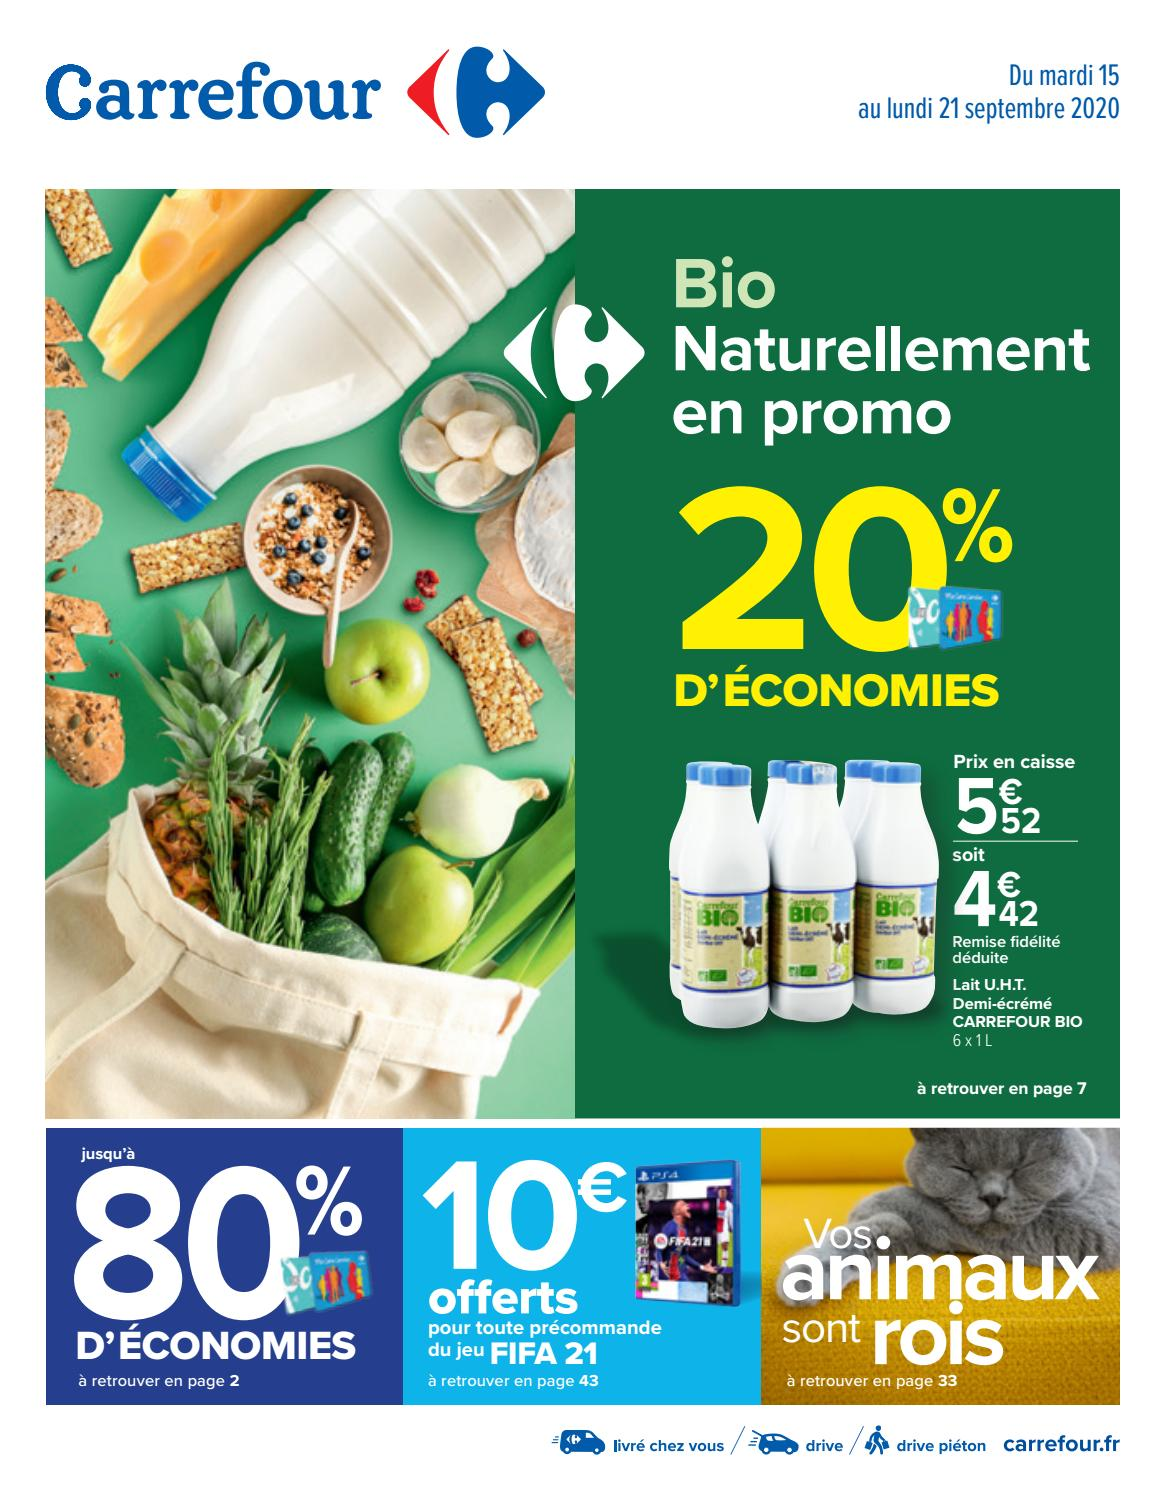 Carrefour France Catalogue Bio Naturellement En Promo By Hmbe Catalogue Network Issuu